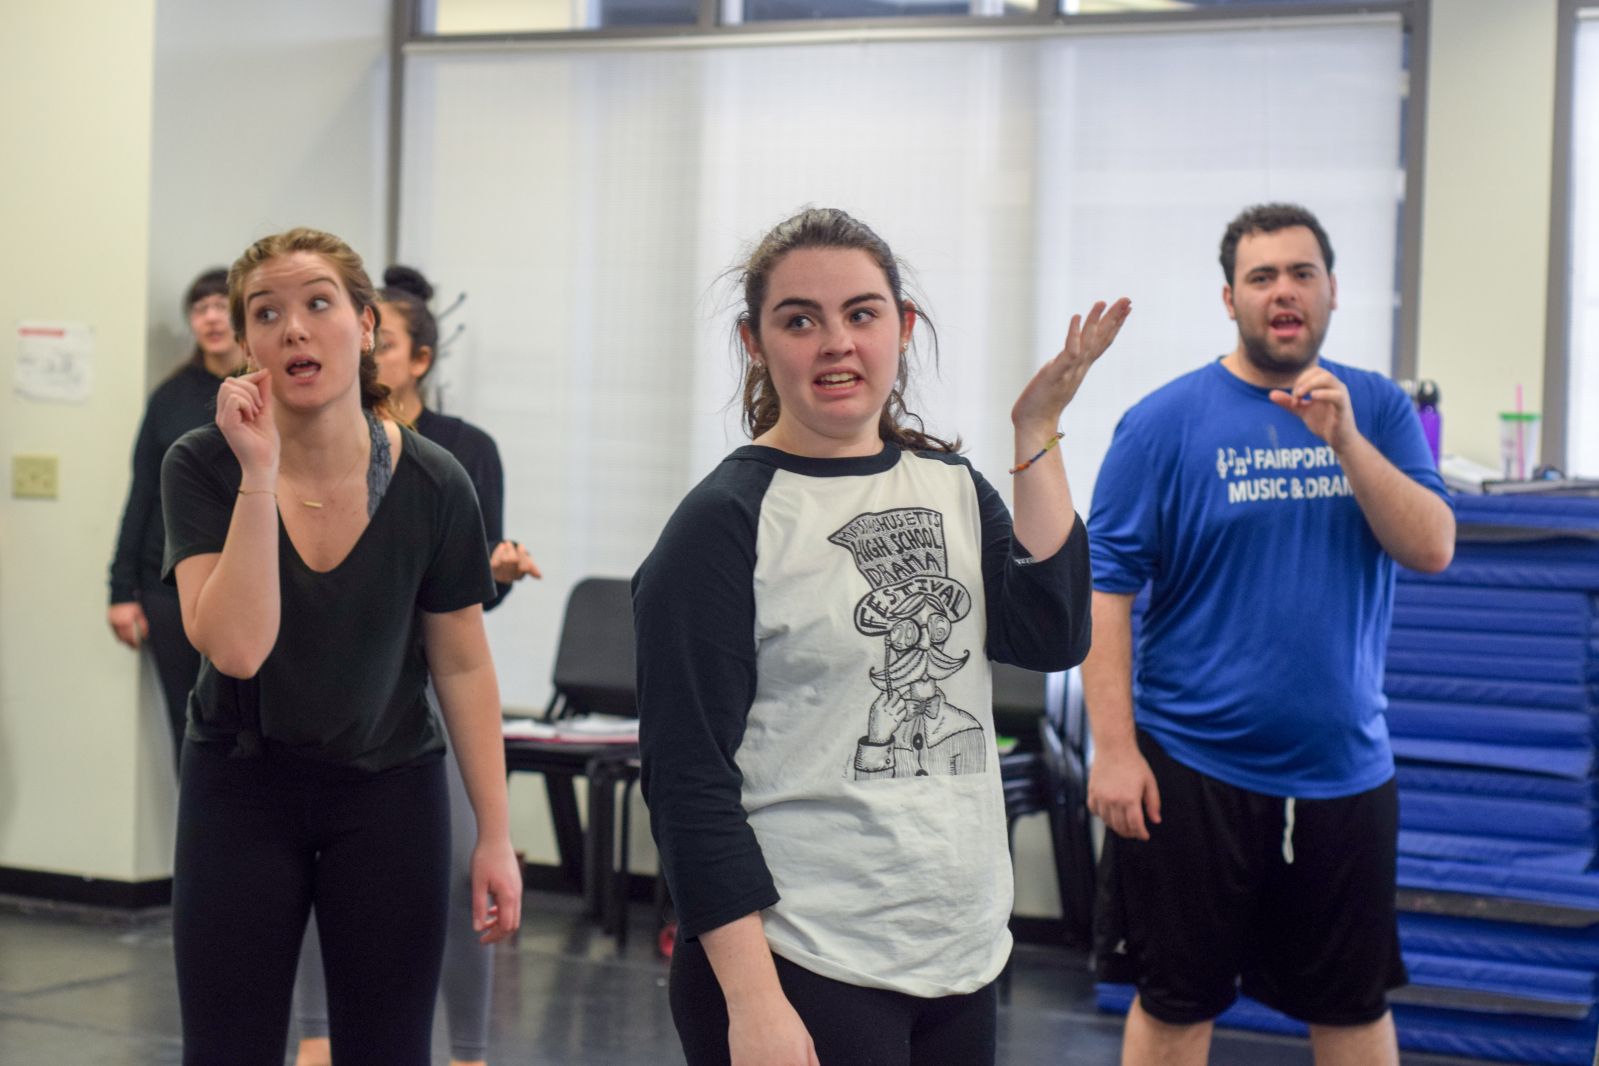 Nazareth College brings 9 TO 5 to Callahan Theater